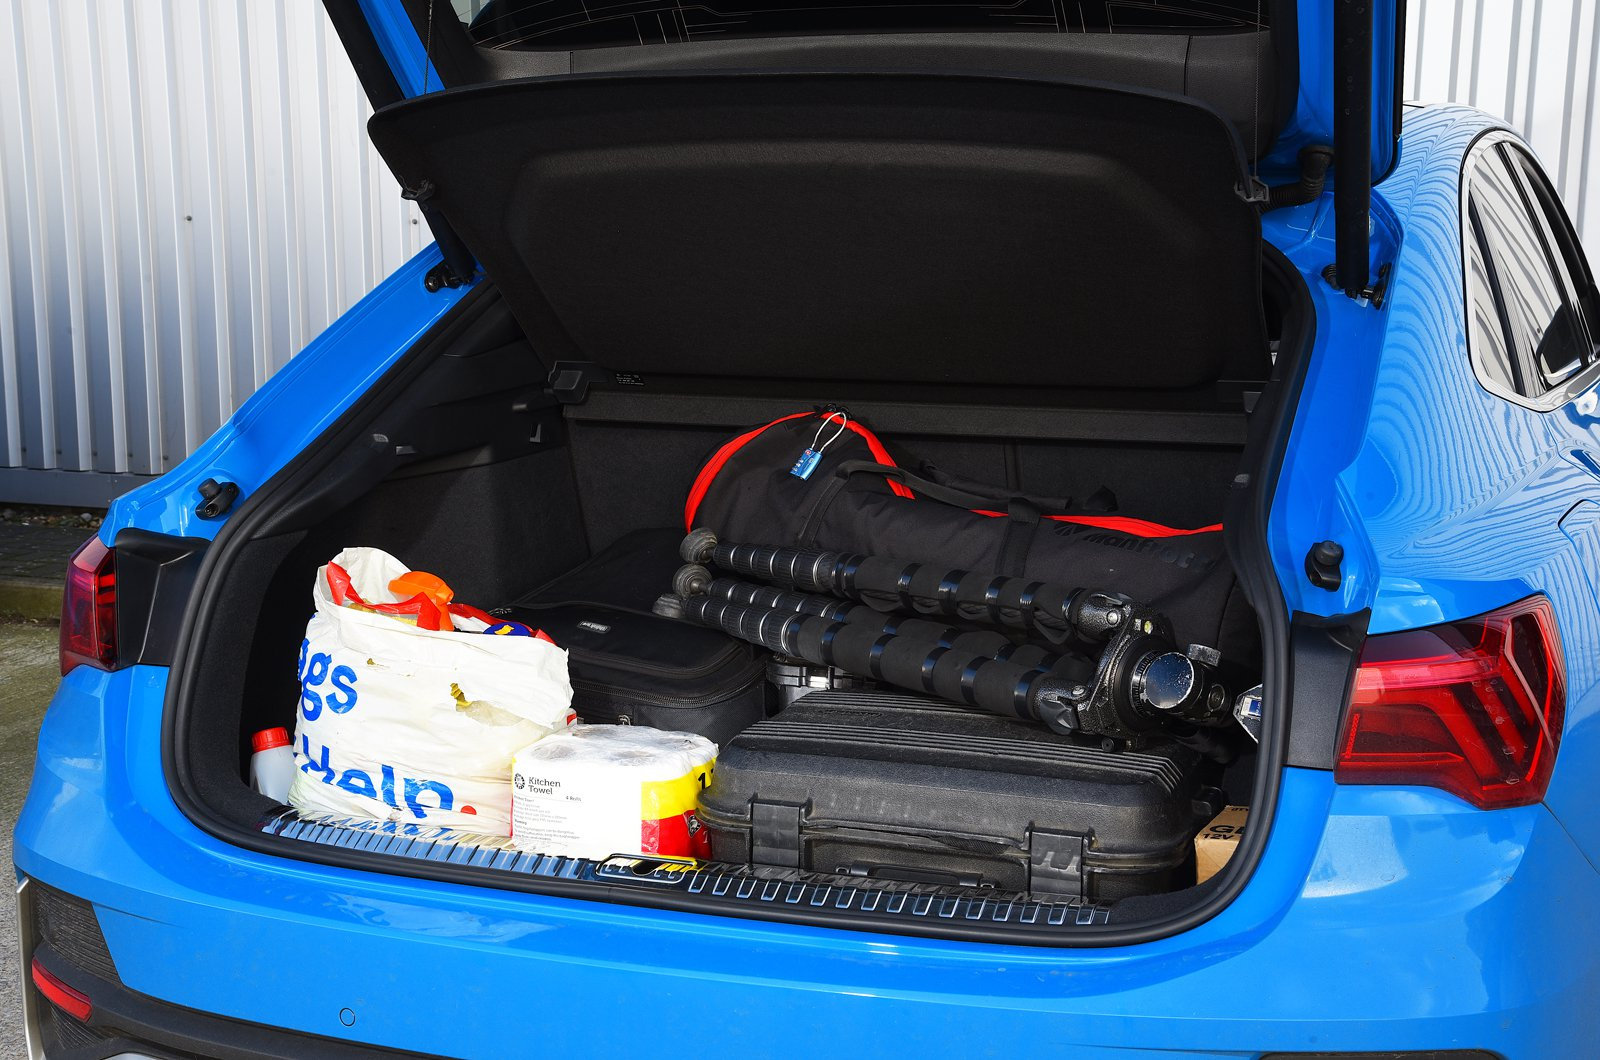 LT Audi Q3 Sportback boot filled with camera gear